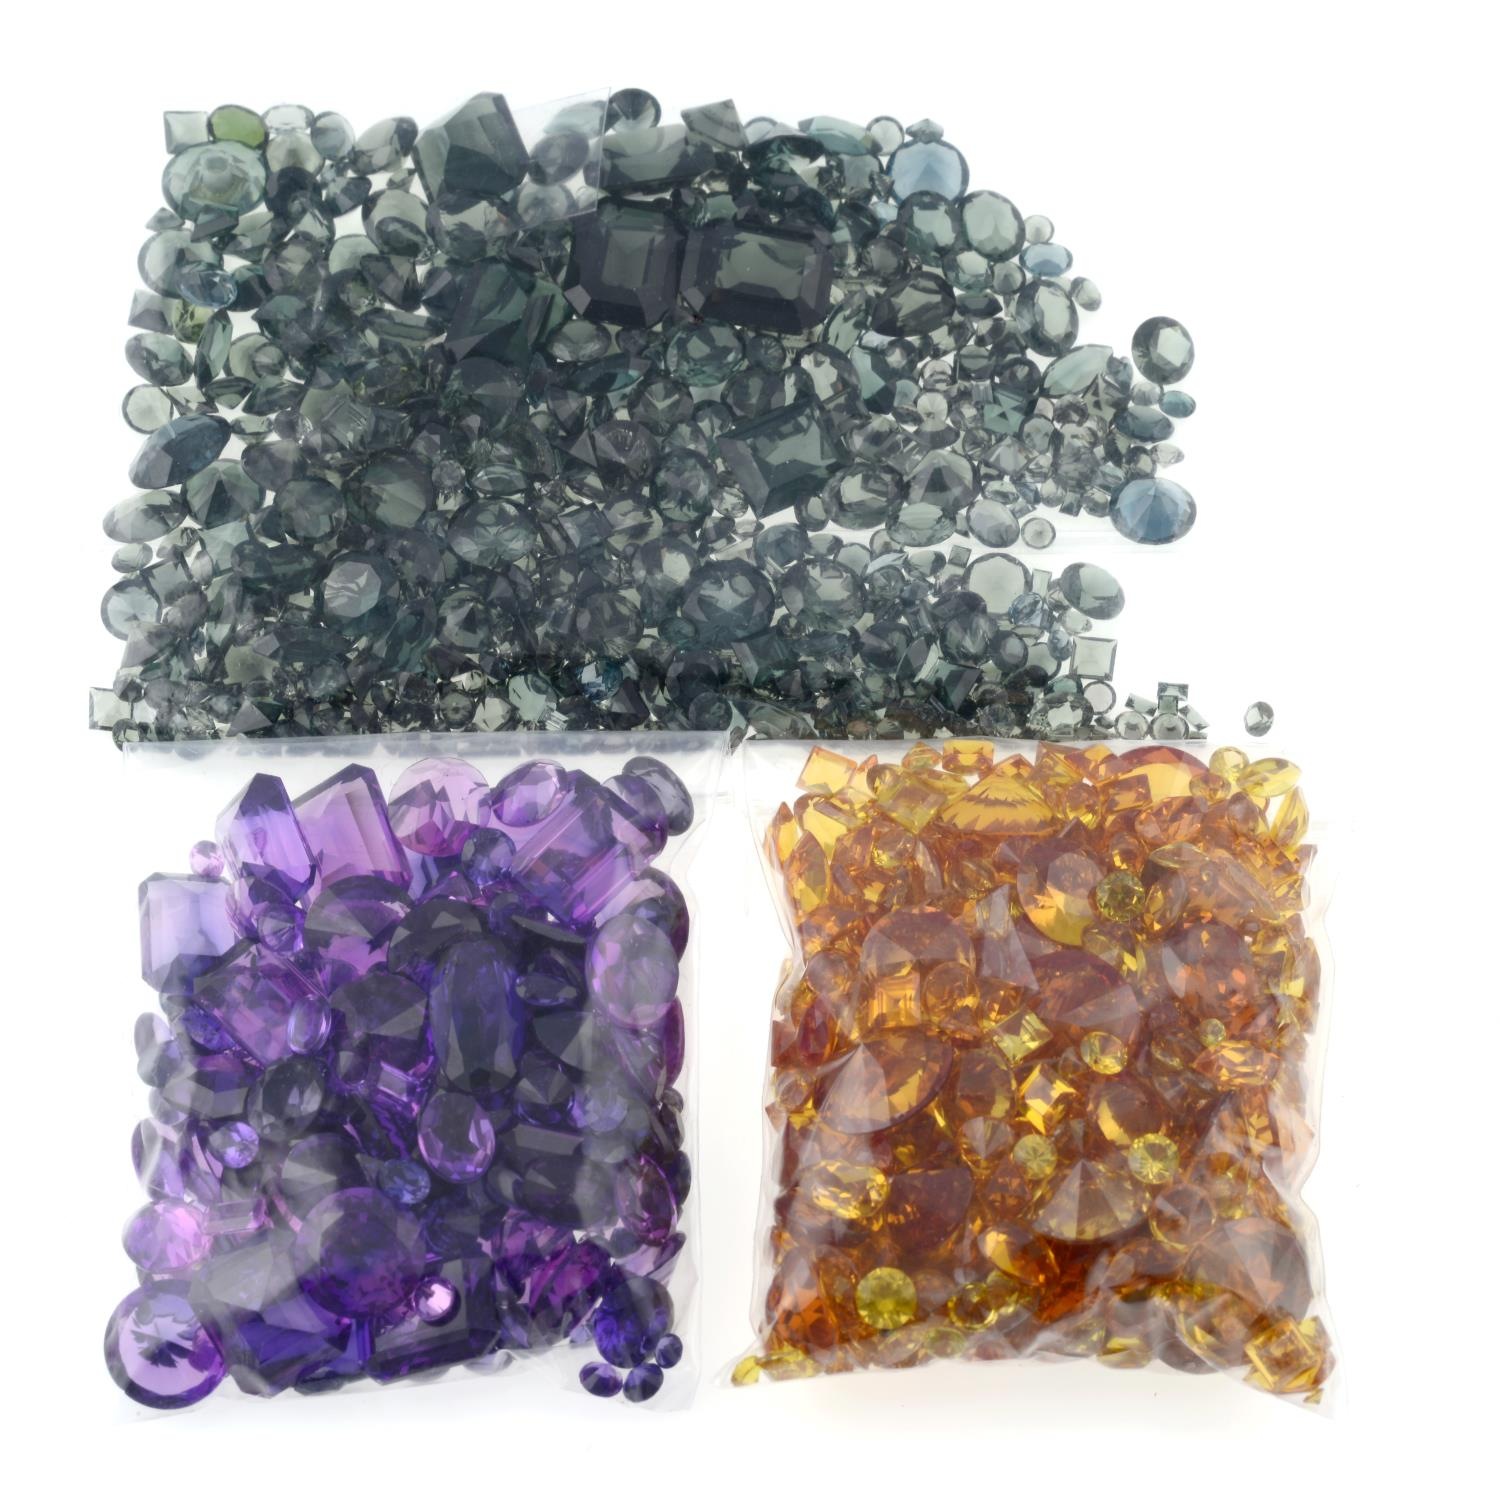 A selection of synthetic spinels and synthetic sapphires, weighing 189gms. - Image 2 of 2